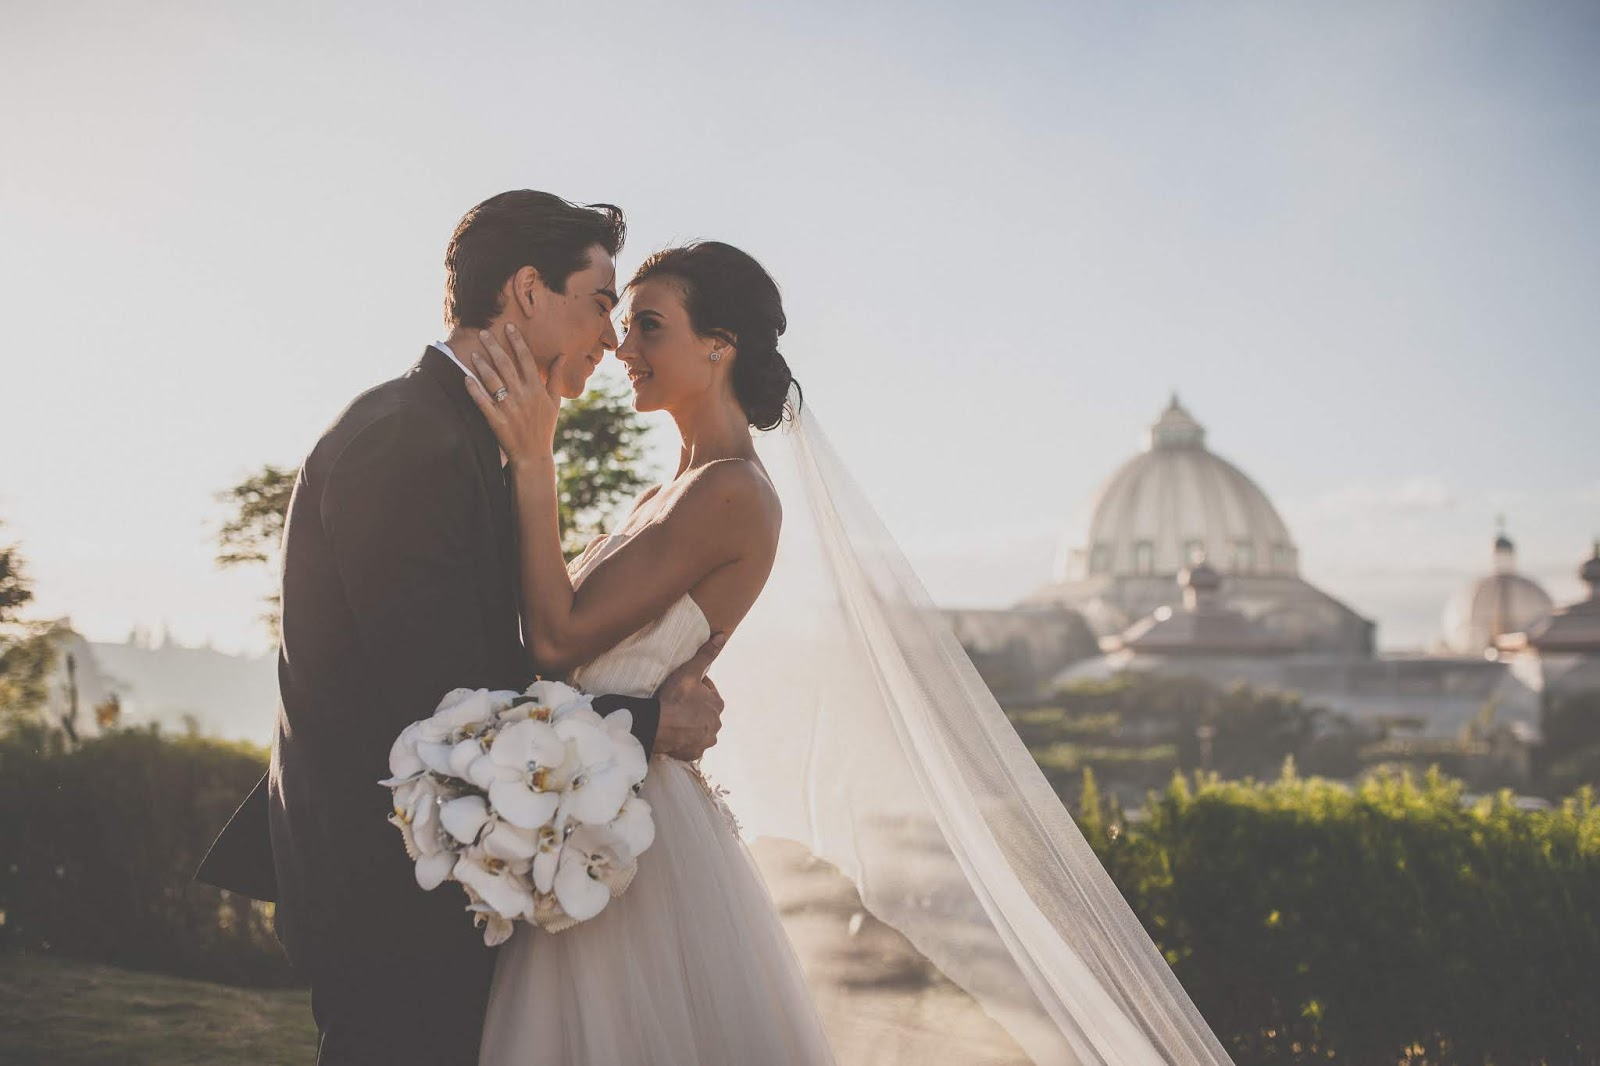 Lemon GreenTea: Palazzo Verde hosts the 6th grandest Wedding